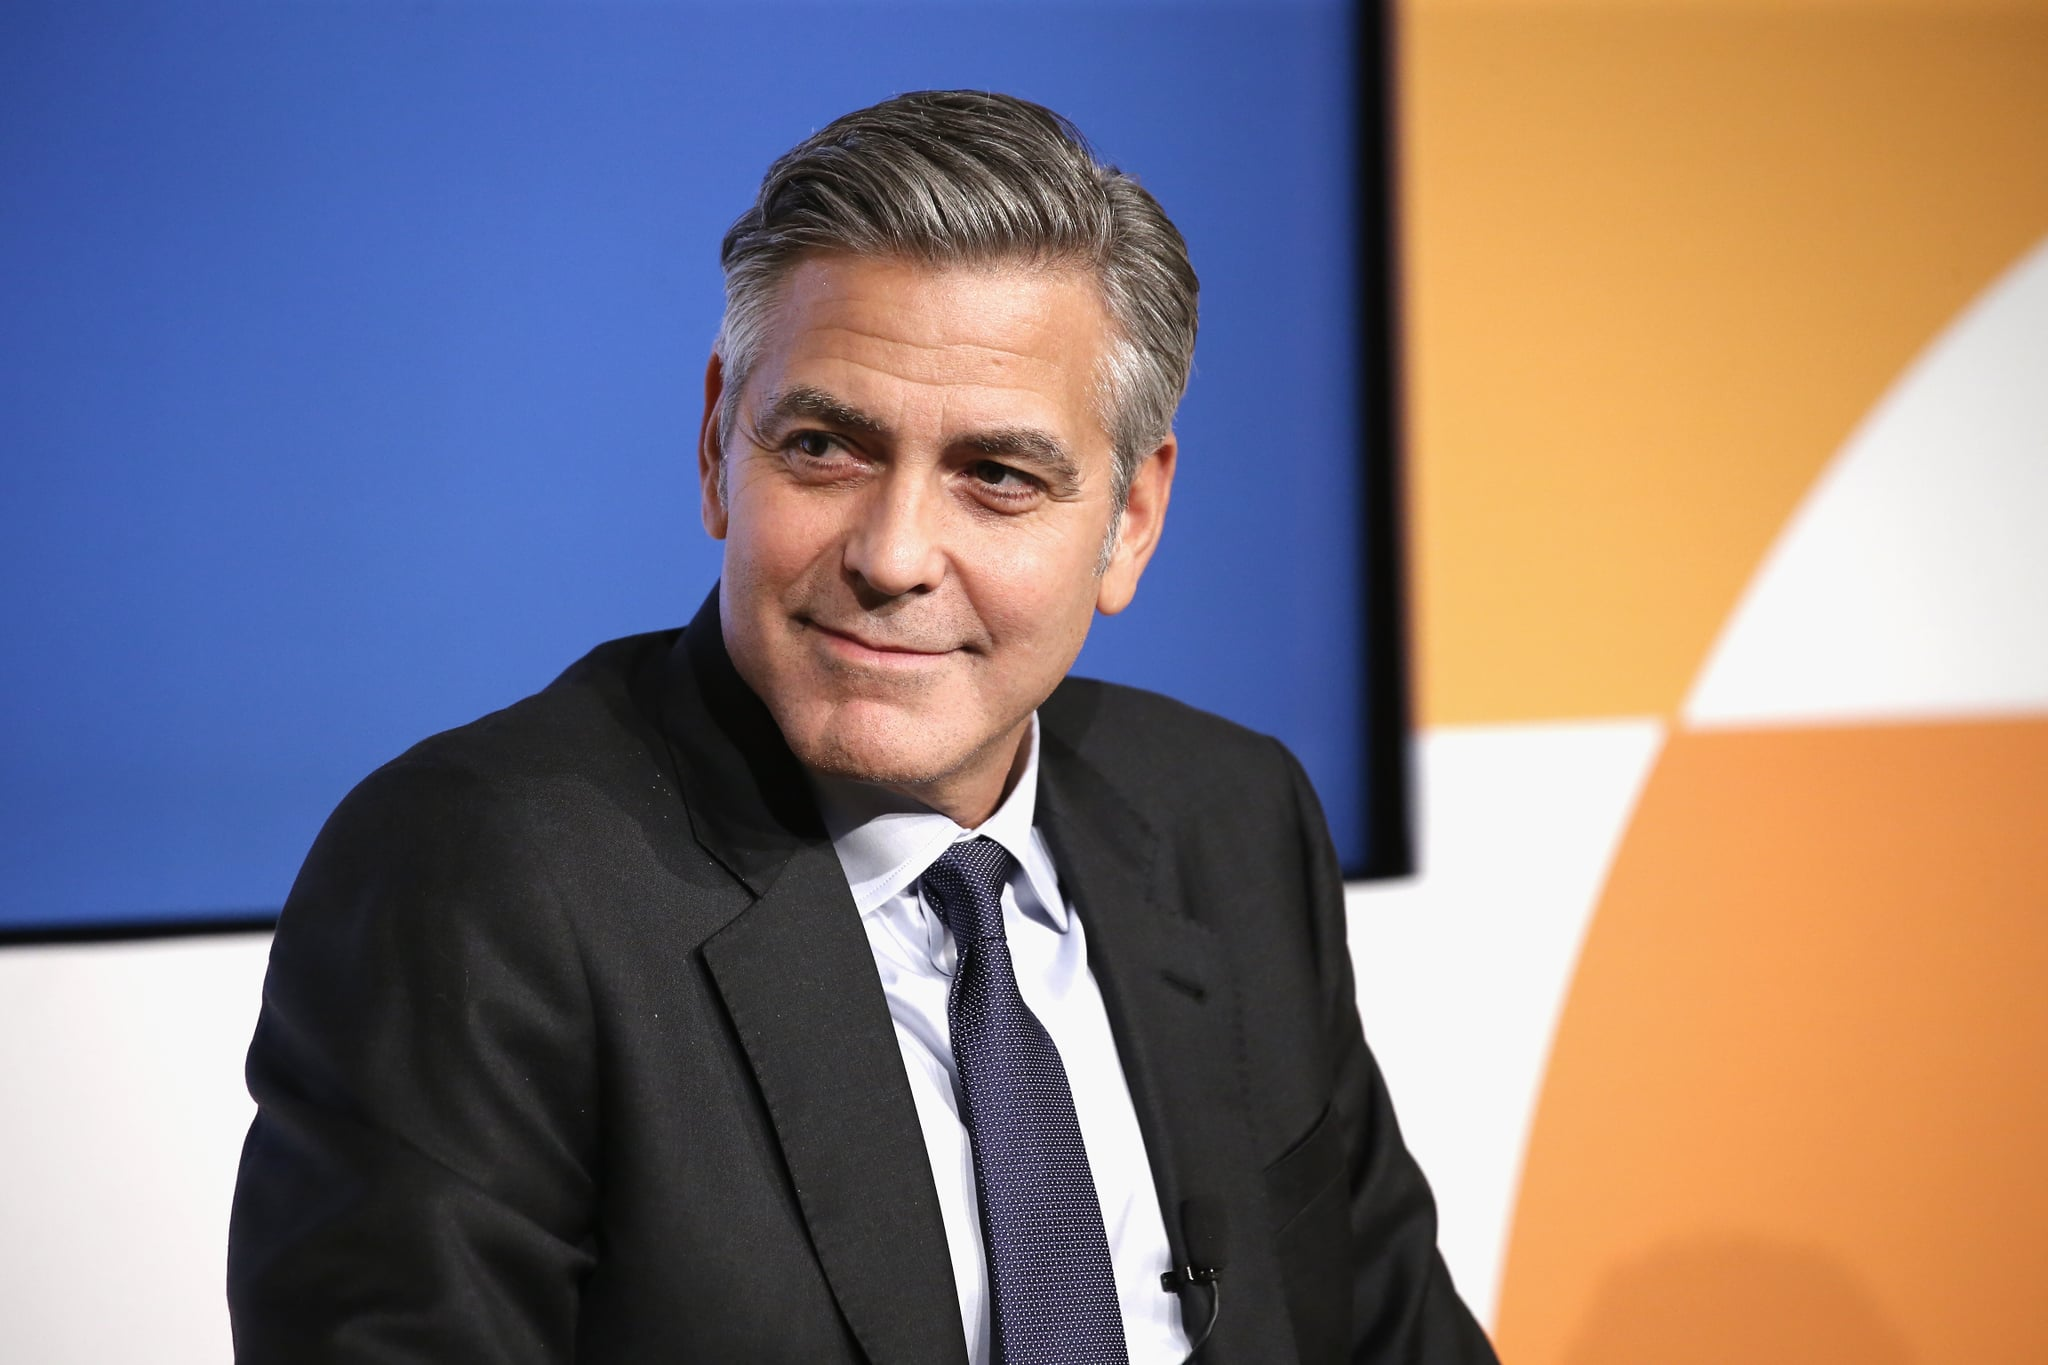 George Clooney Will Star in and Direct 'Catch 22' Series